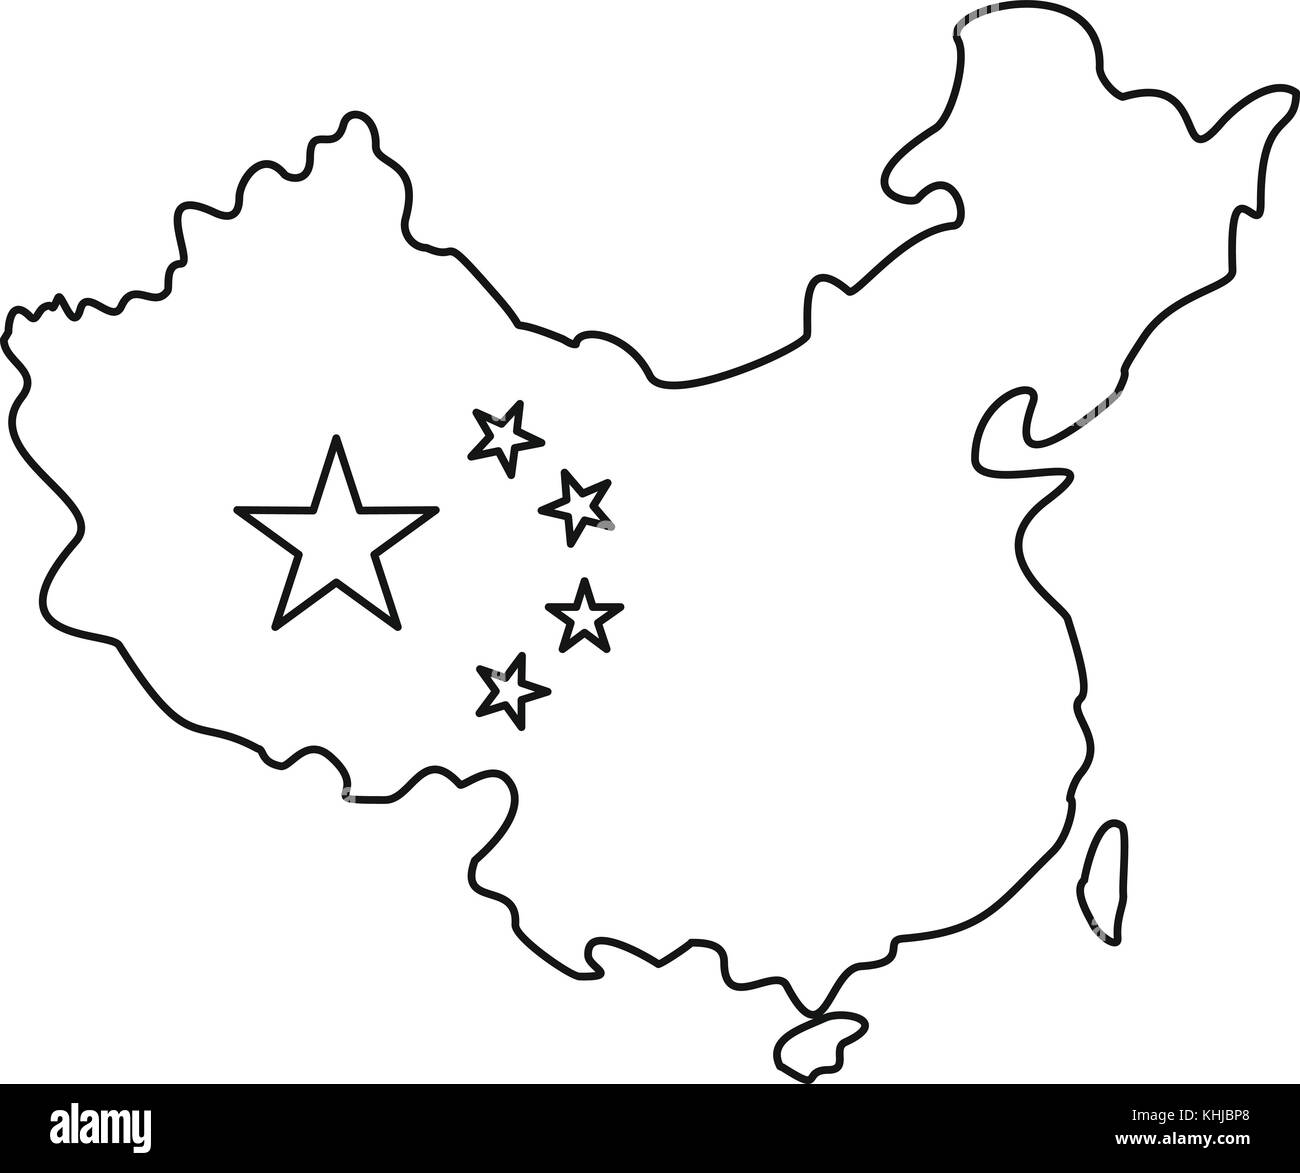 China Map Black and White Stock Photos & Images - Alamy